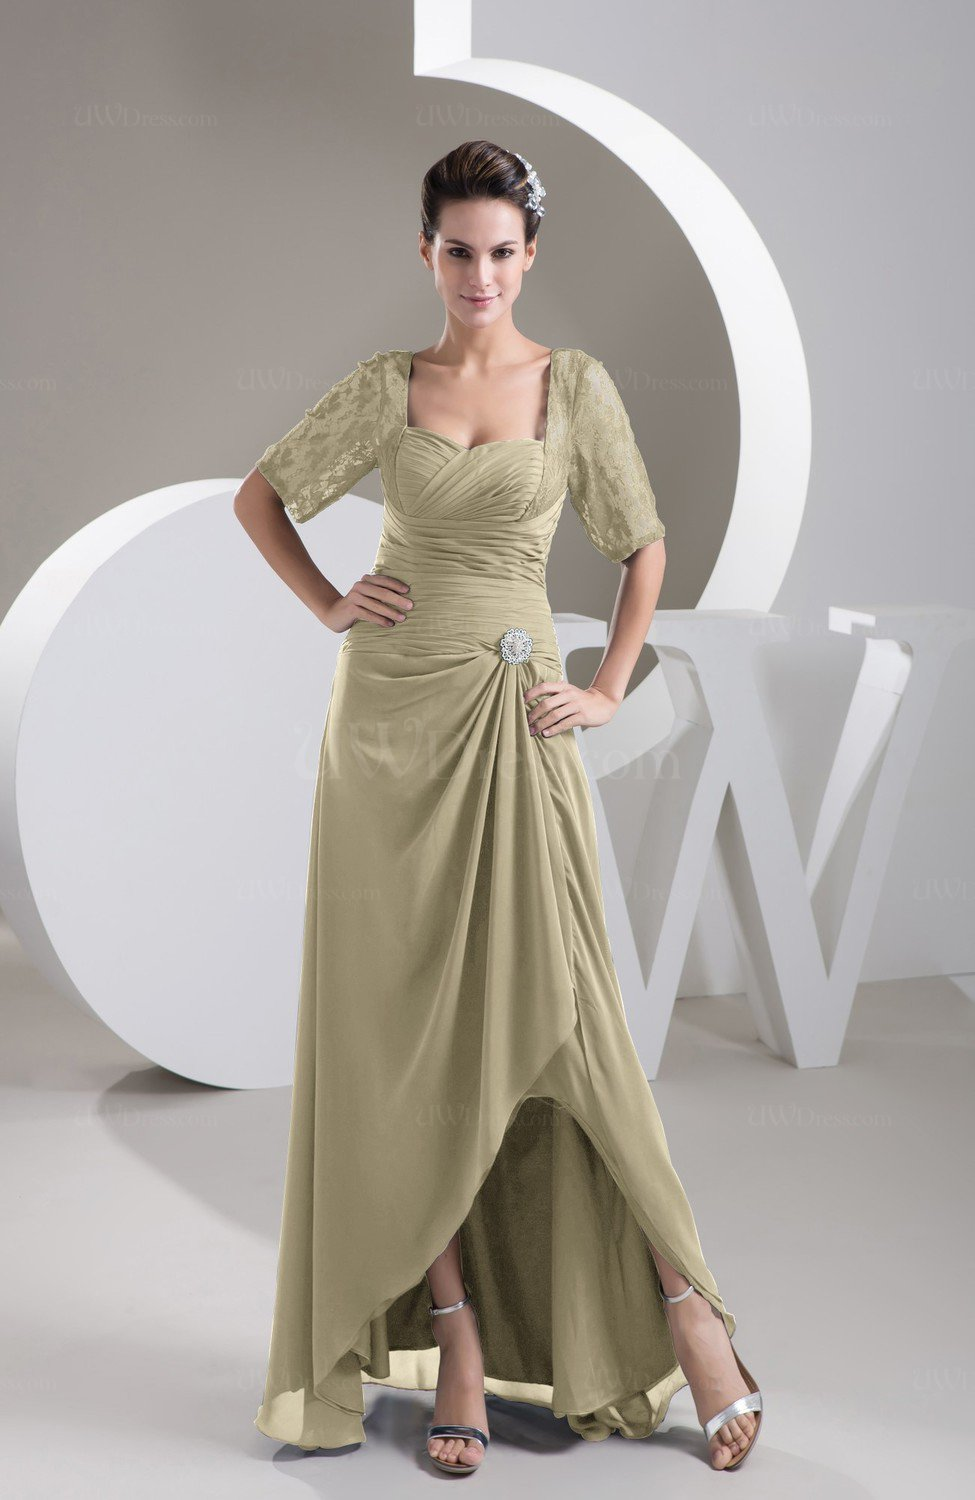 With Sleeves Bridesmaid Dress Chiffon Cly Le Trendy Plain Full Figure